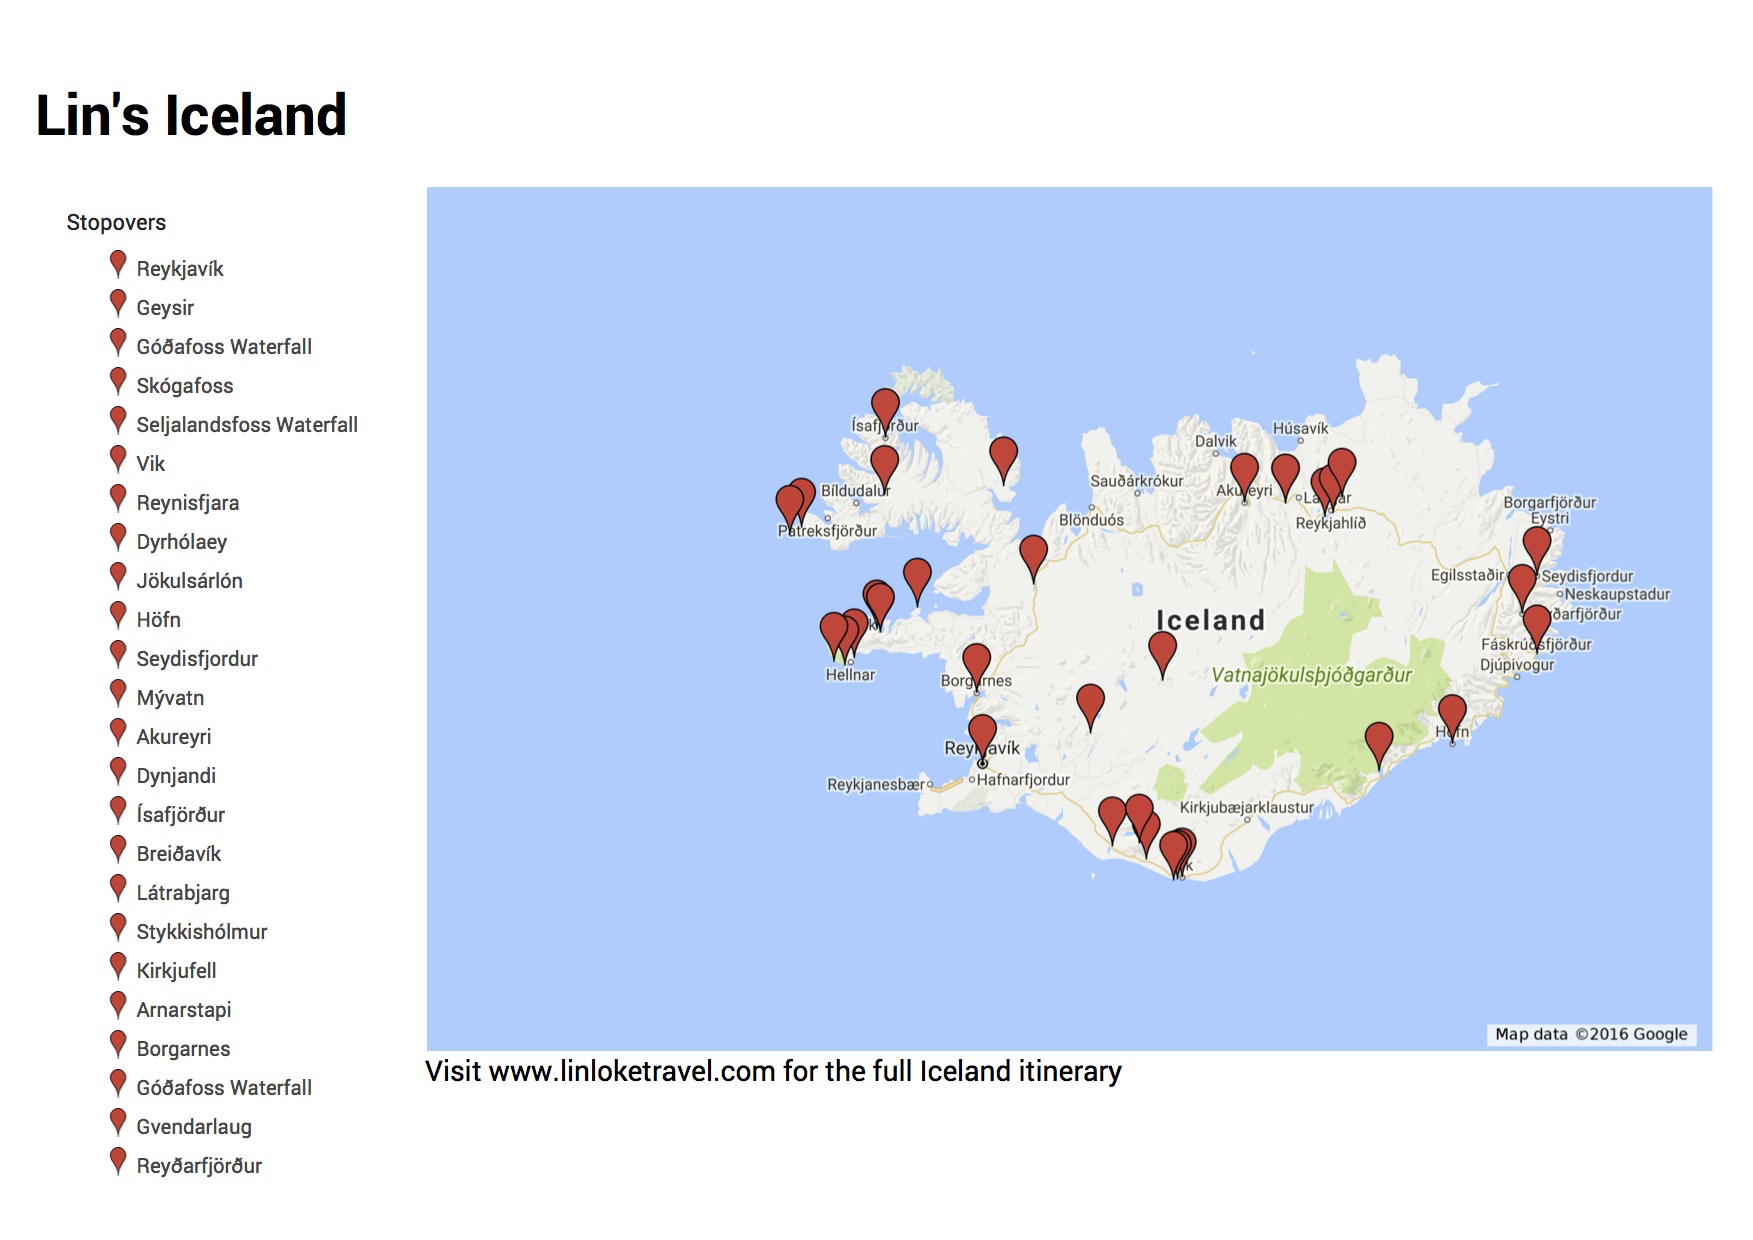 Scroll down to the bottom of the page to obtain to the link for Lin's Iceland Google MyMaps.